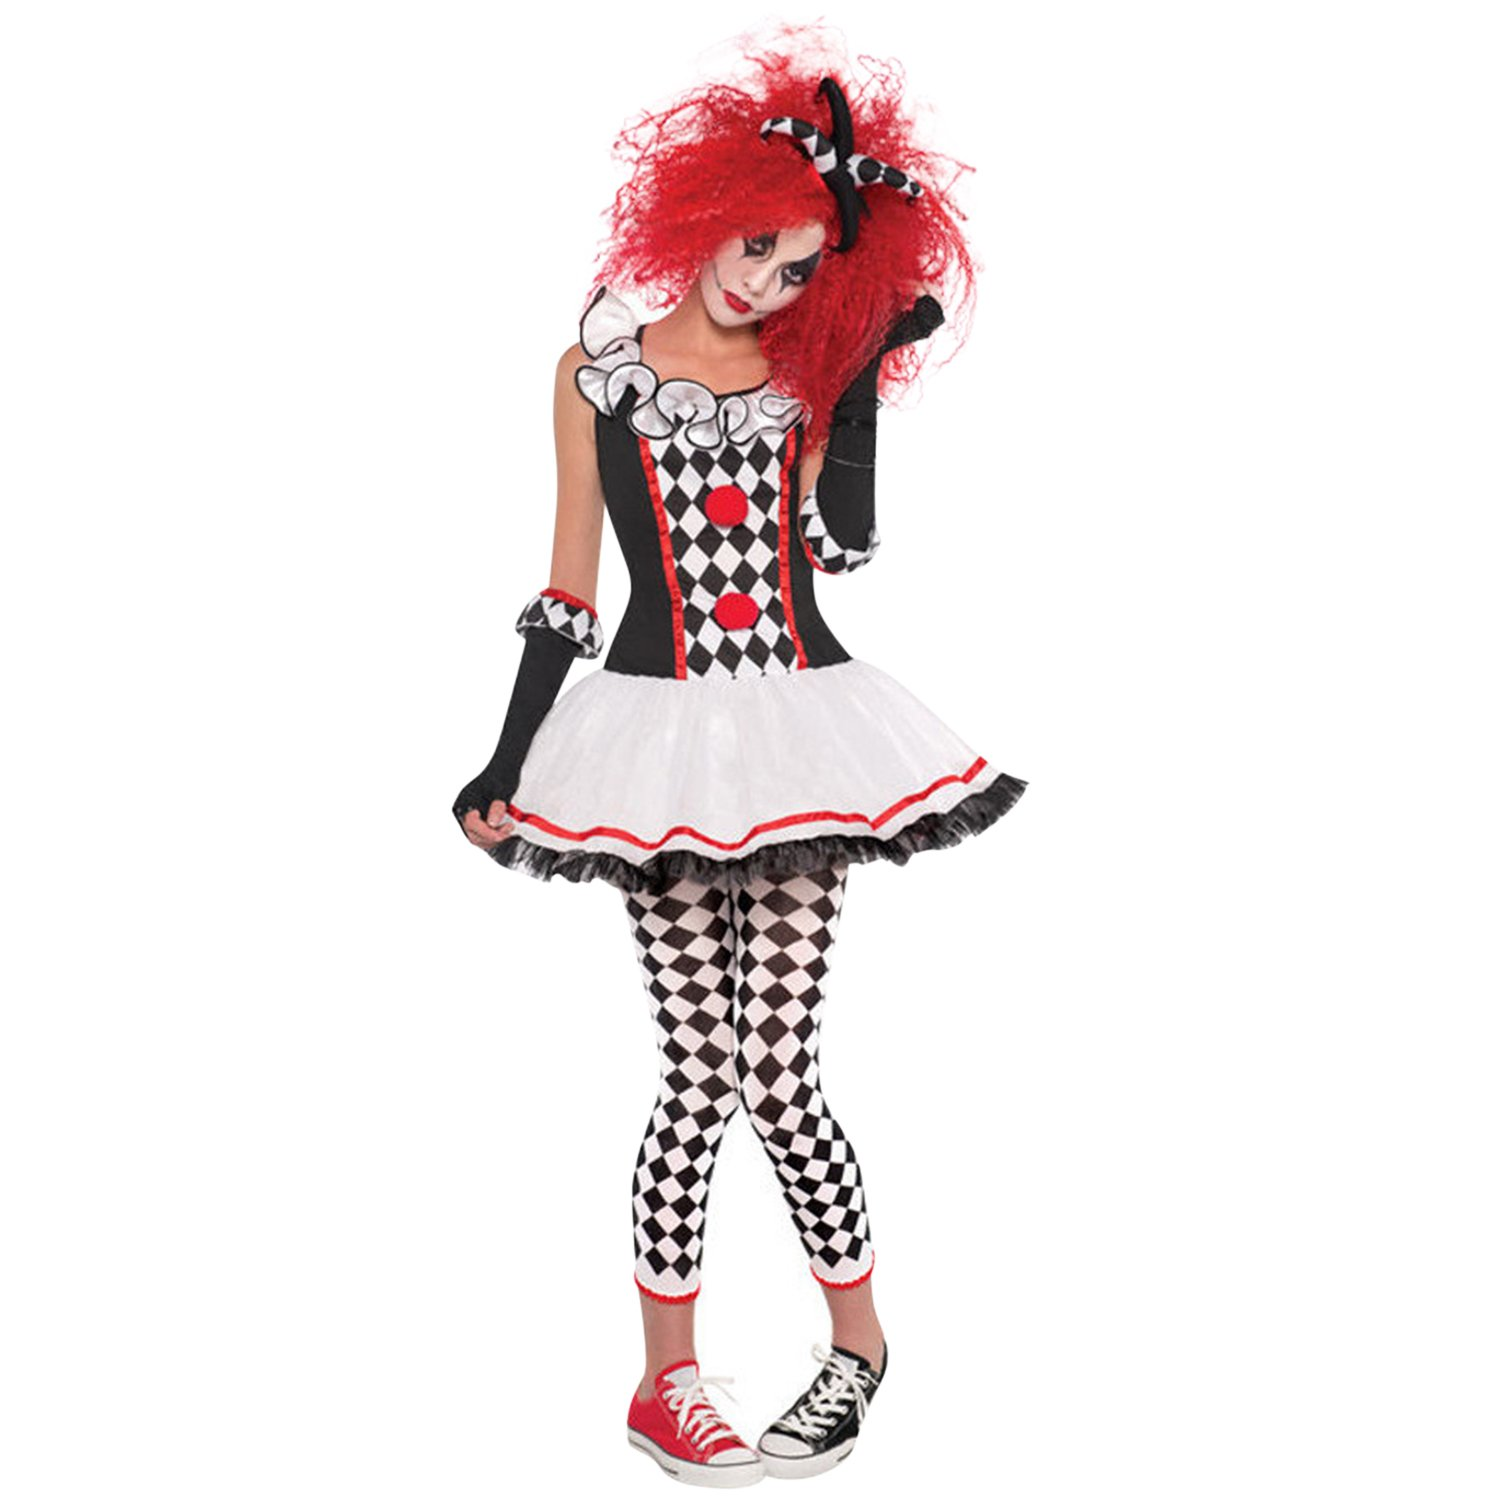 CHNS Women's Funny Clown Costume Cosplay Costumes for Halloween Carnival